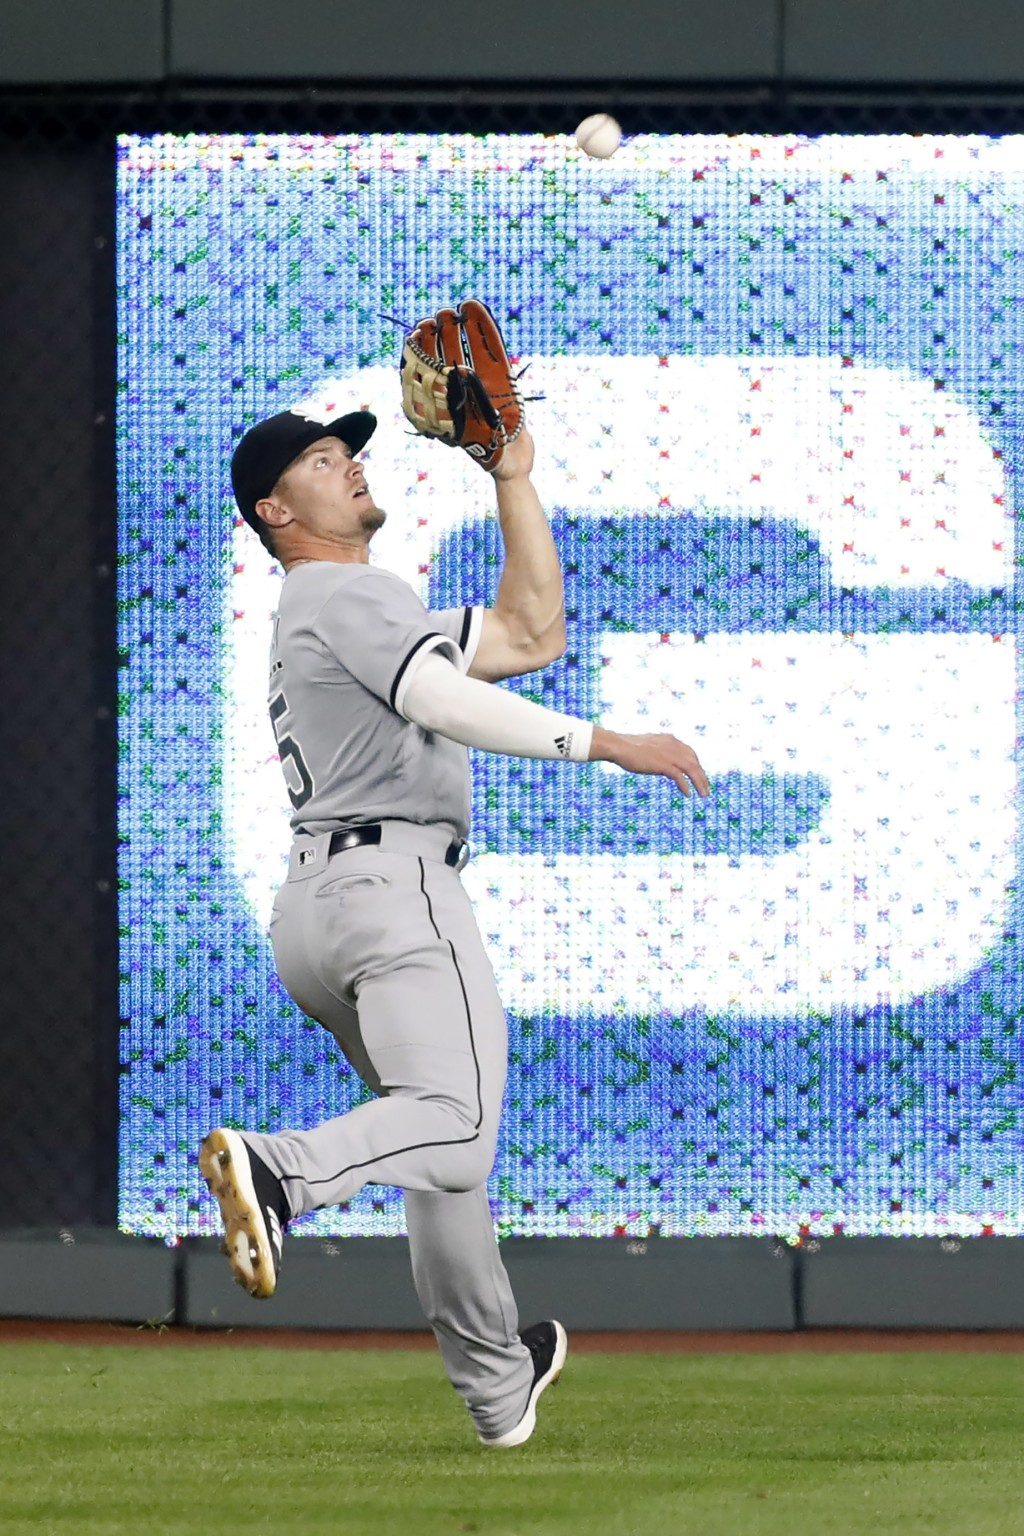 Chicago White Sox center fielder Adam Engel catches a fly ball from Kansas City Royals' Salvador Perez during the seventh inning of a baseball game at...